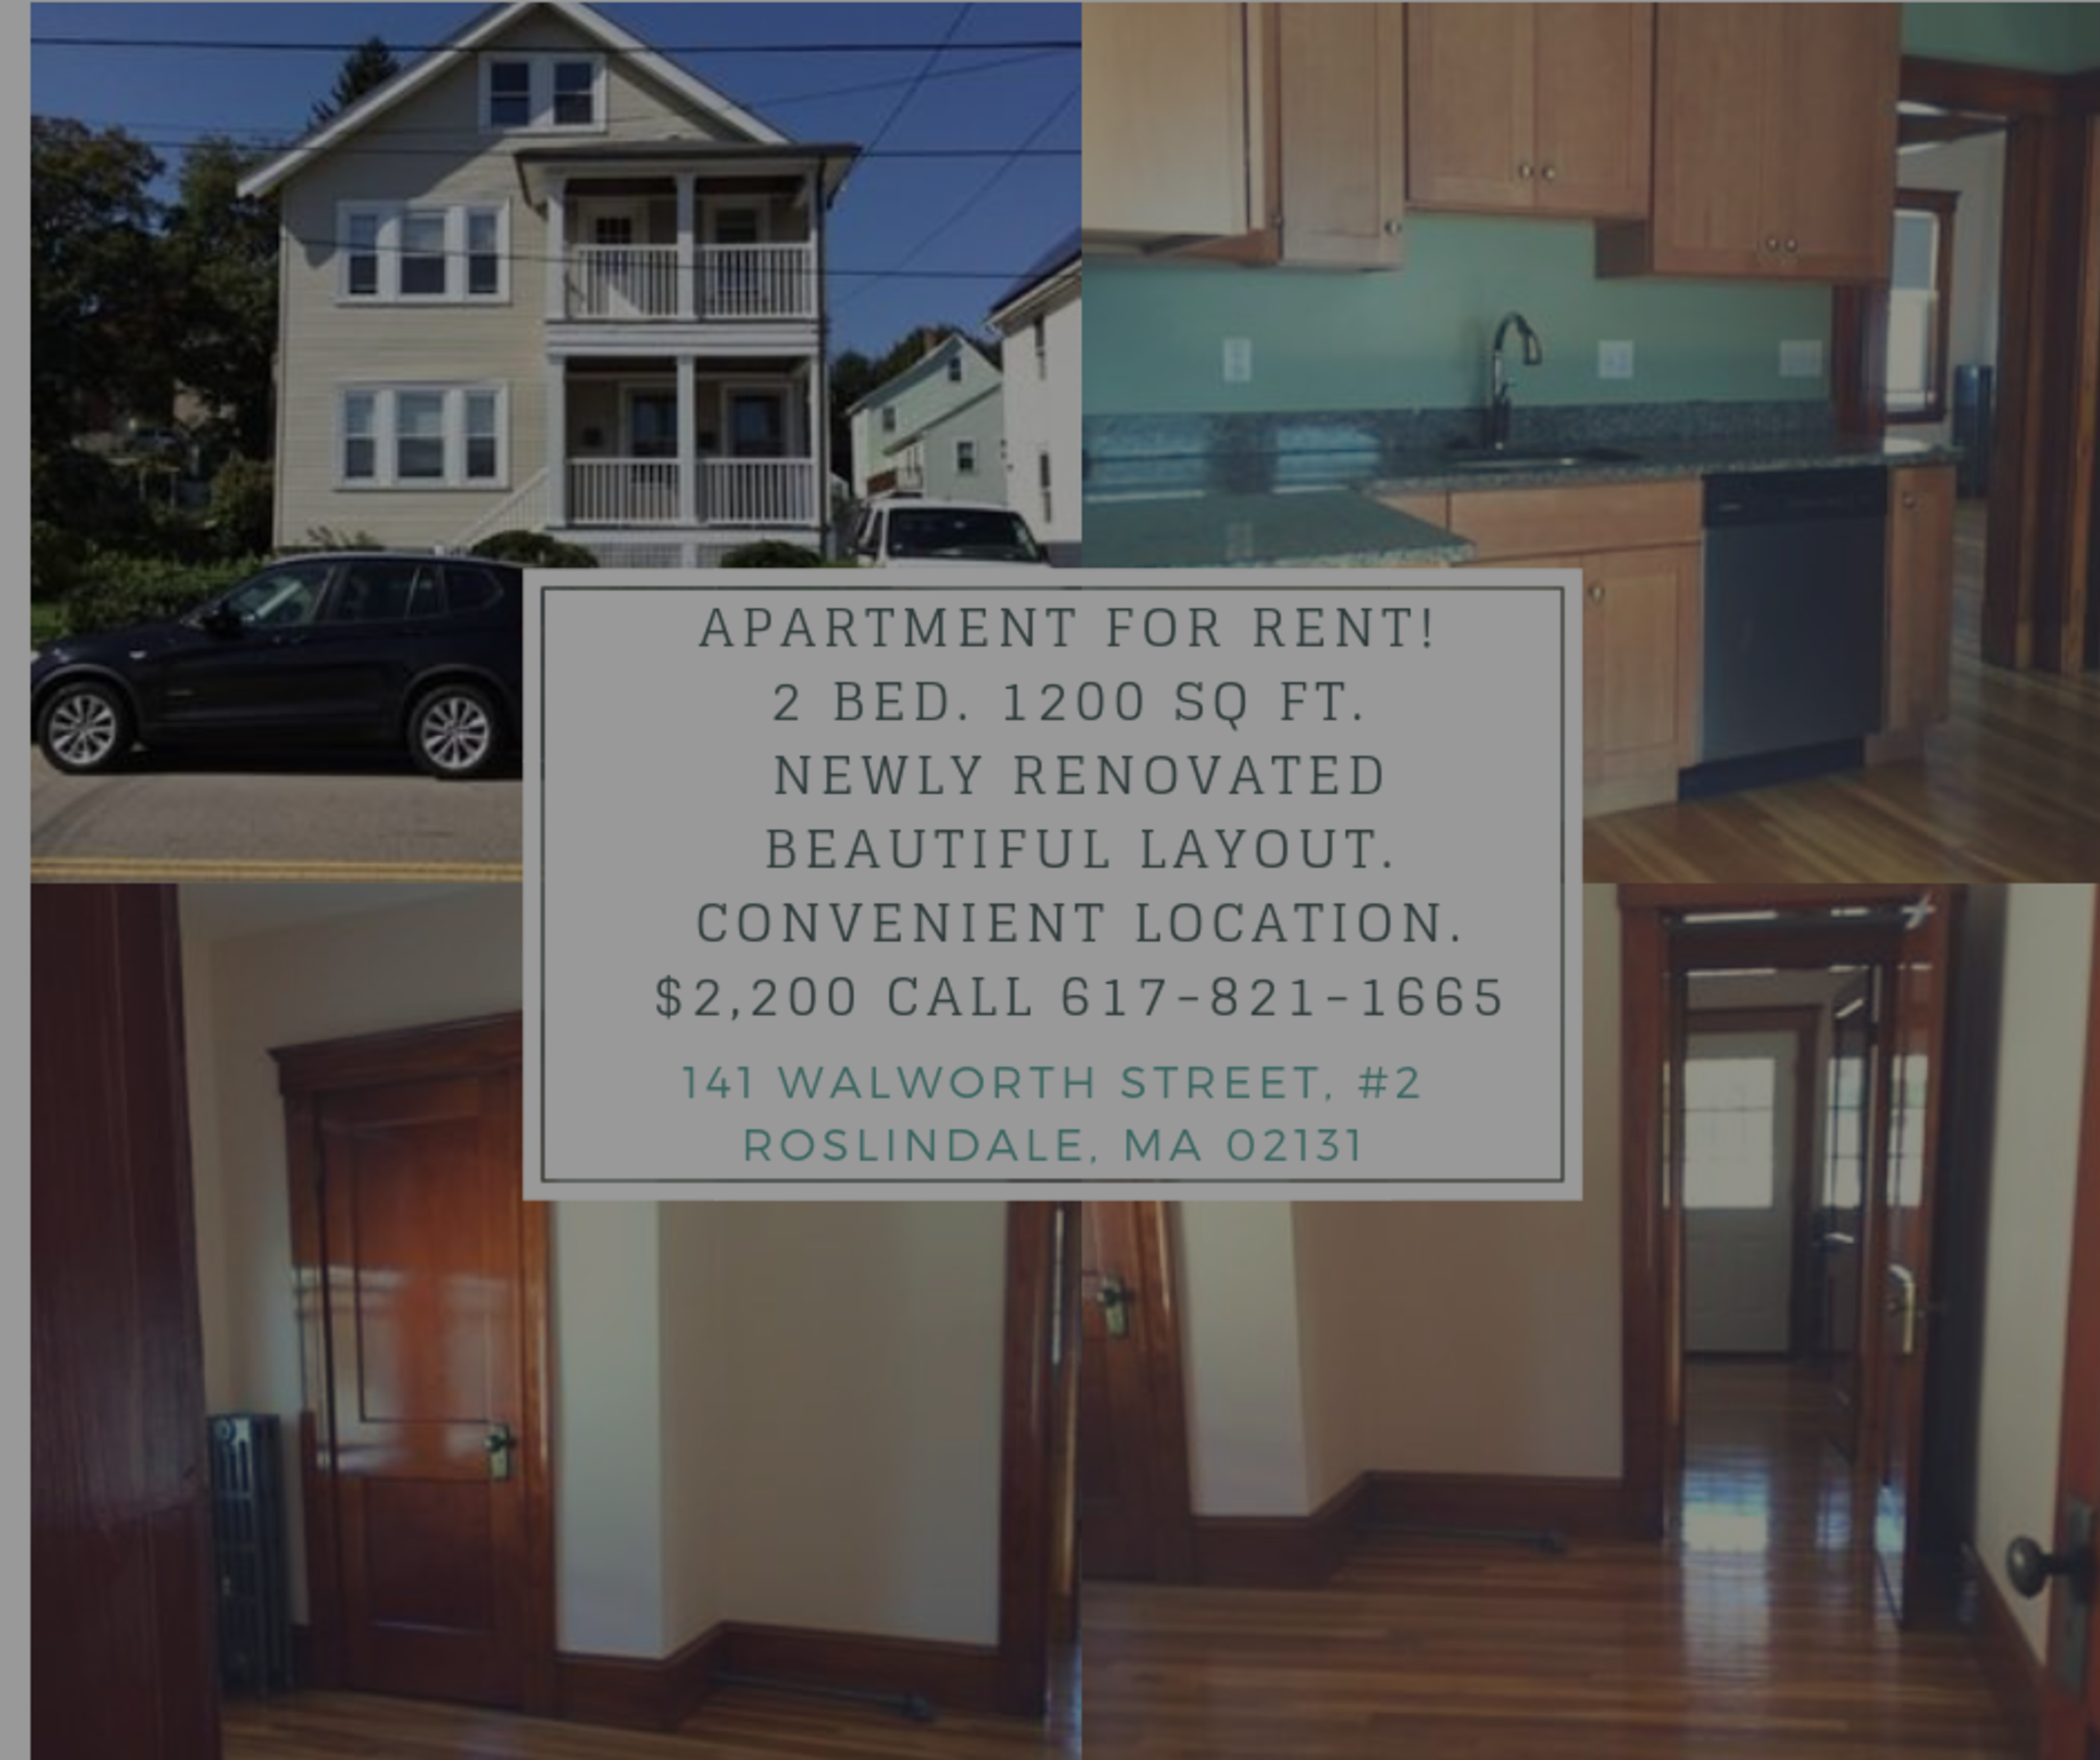 Apartment for Rent – Roslindale – Walworth Street